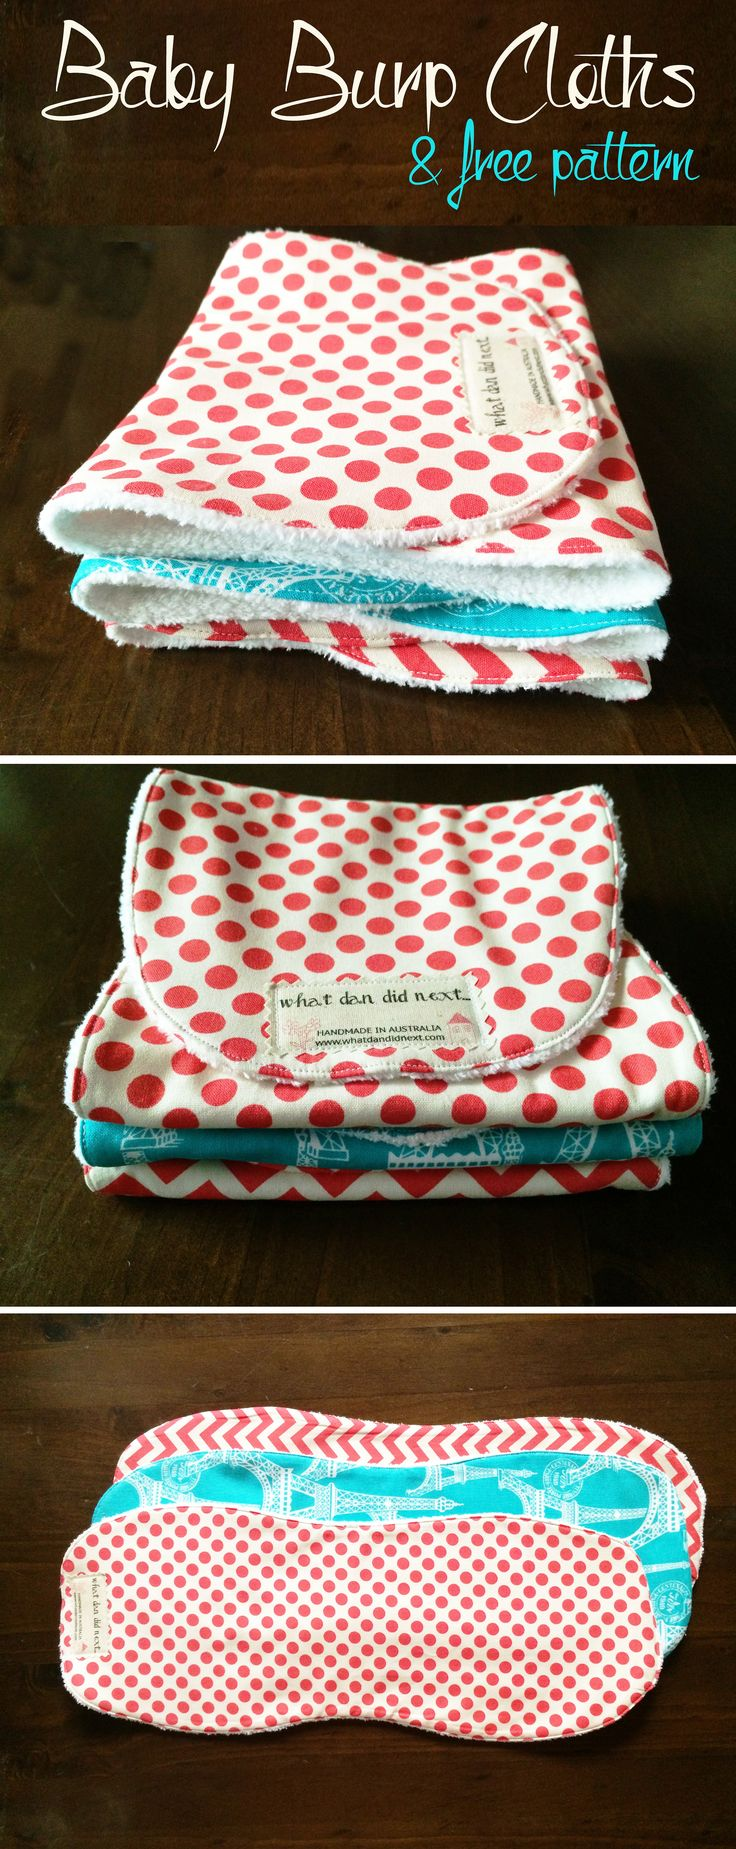 Baby Burp Cloths With Free Pattern Template Diy